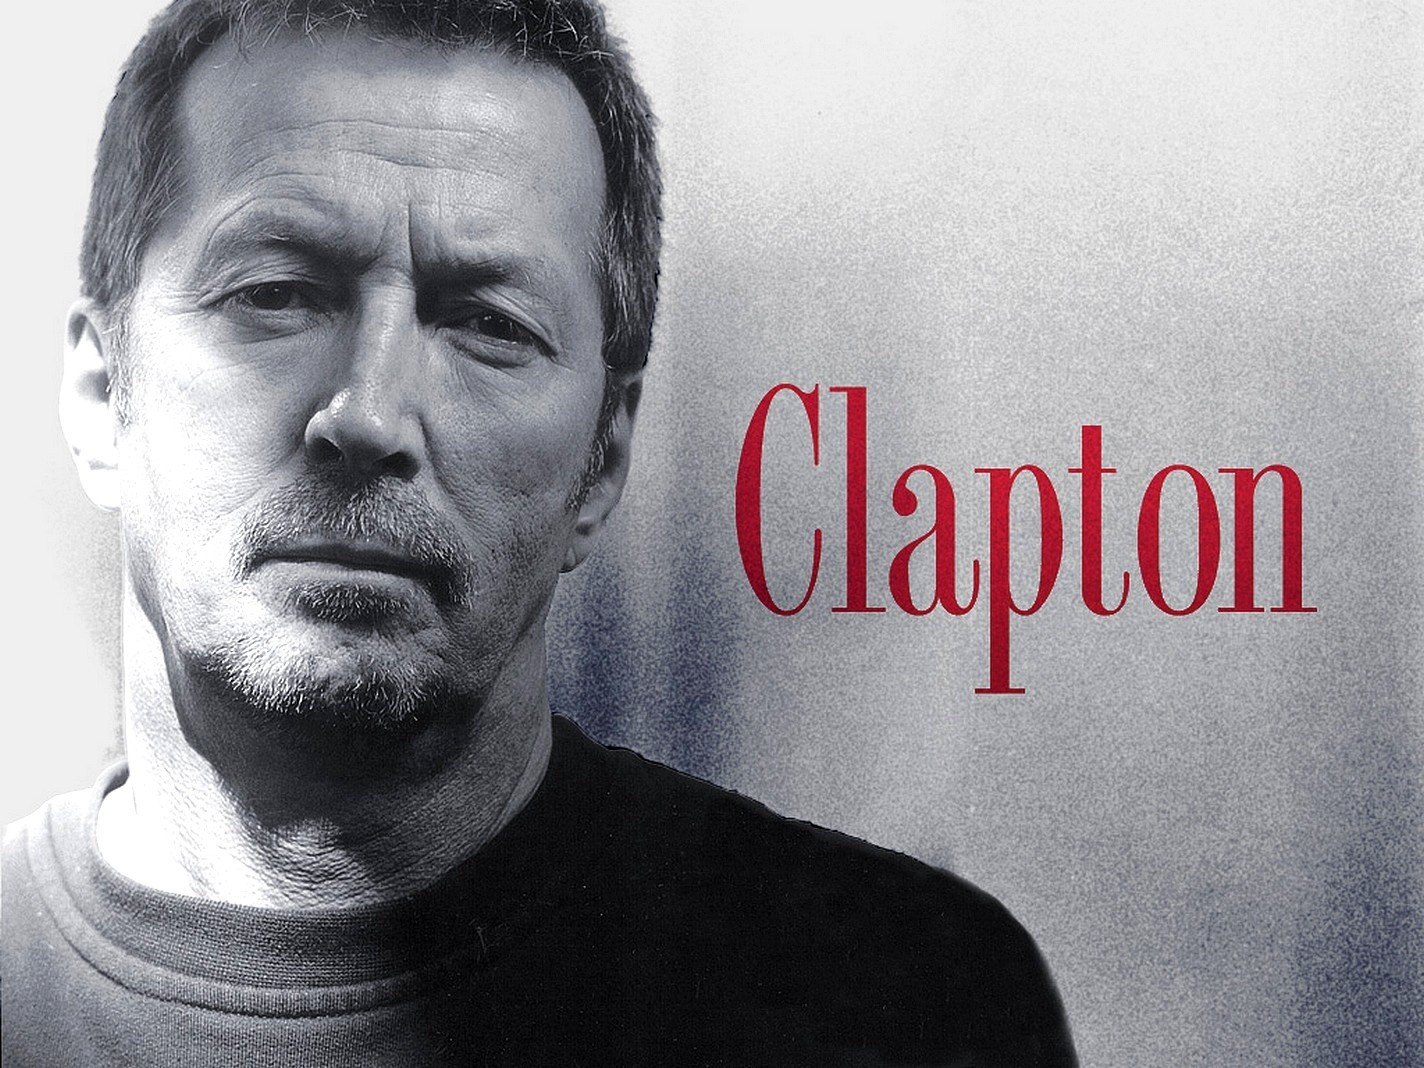 Eric Clapton is one of rock music's quintessential guitarists. He's the only artist to be inducted into the Rock and Roll Hall of Fame three times.